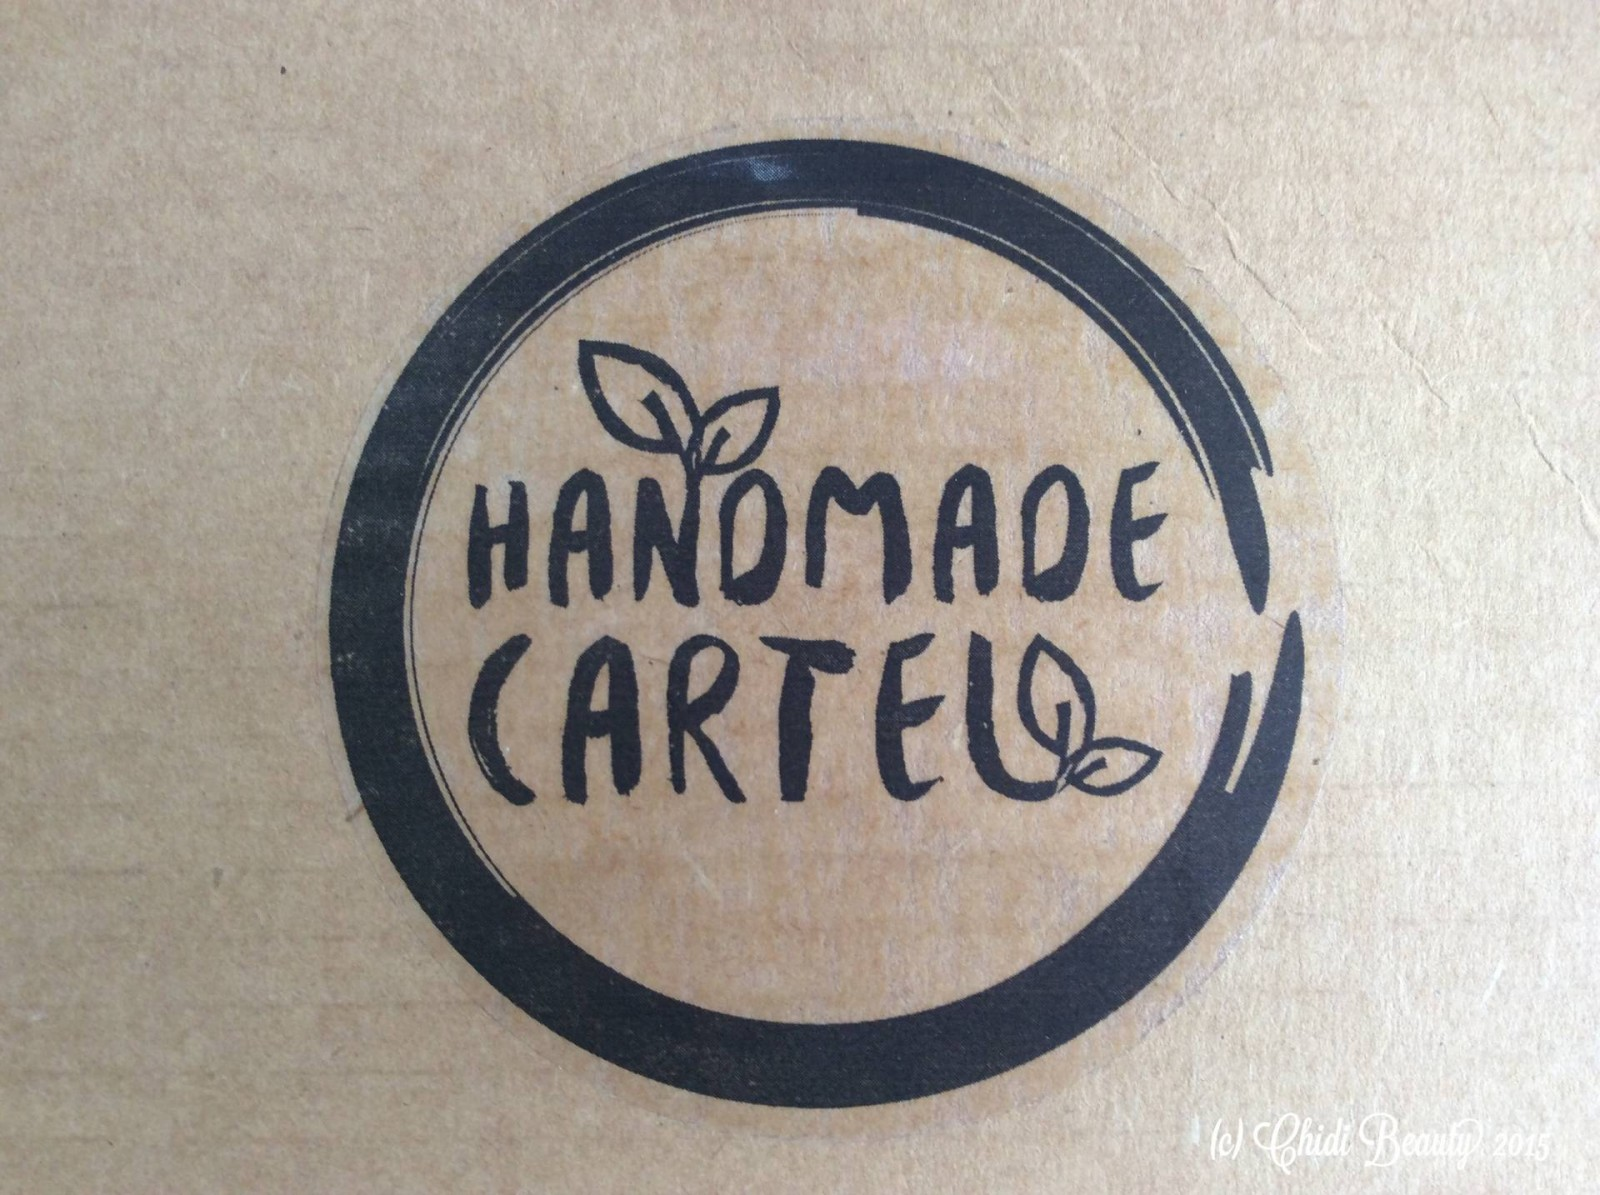 Handmade Cartel Deluxe Subscription Box – September 2015